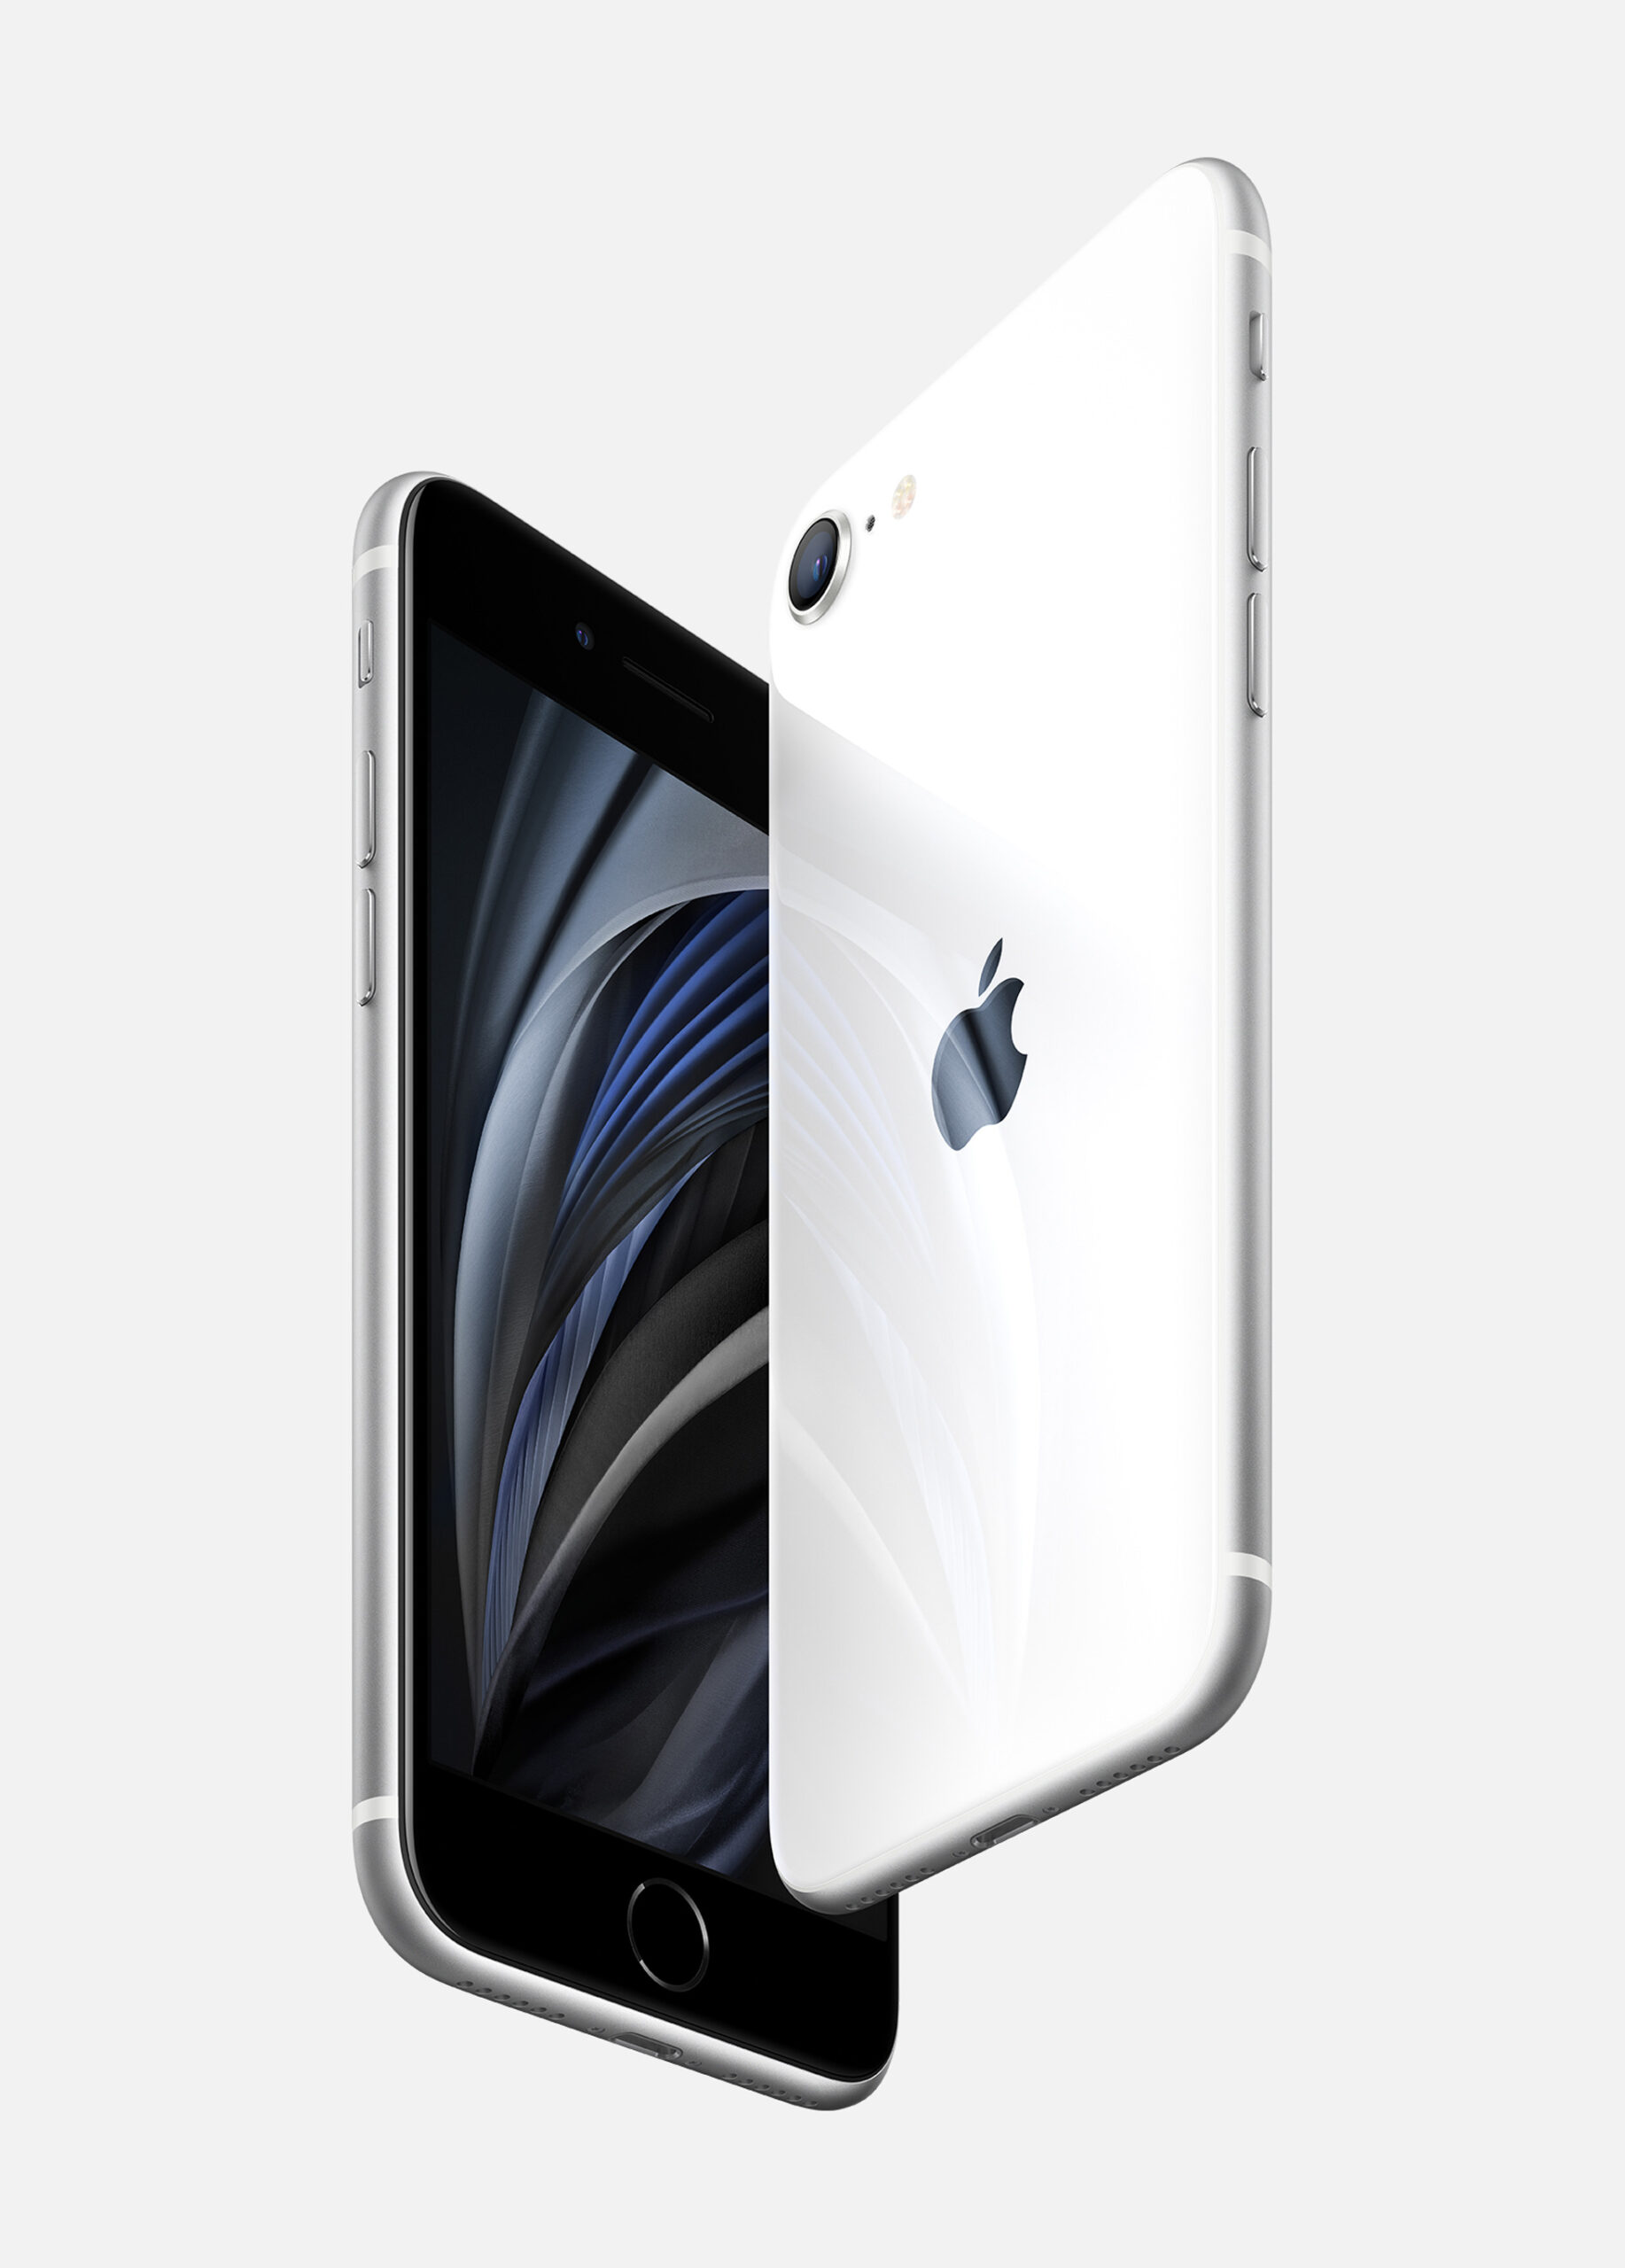 2020 iPhone SE Official - Most Powerful iPhone to Date With A13 ...